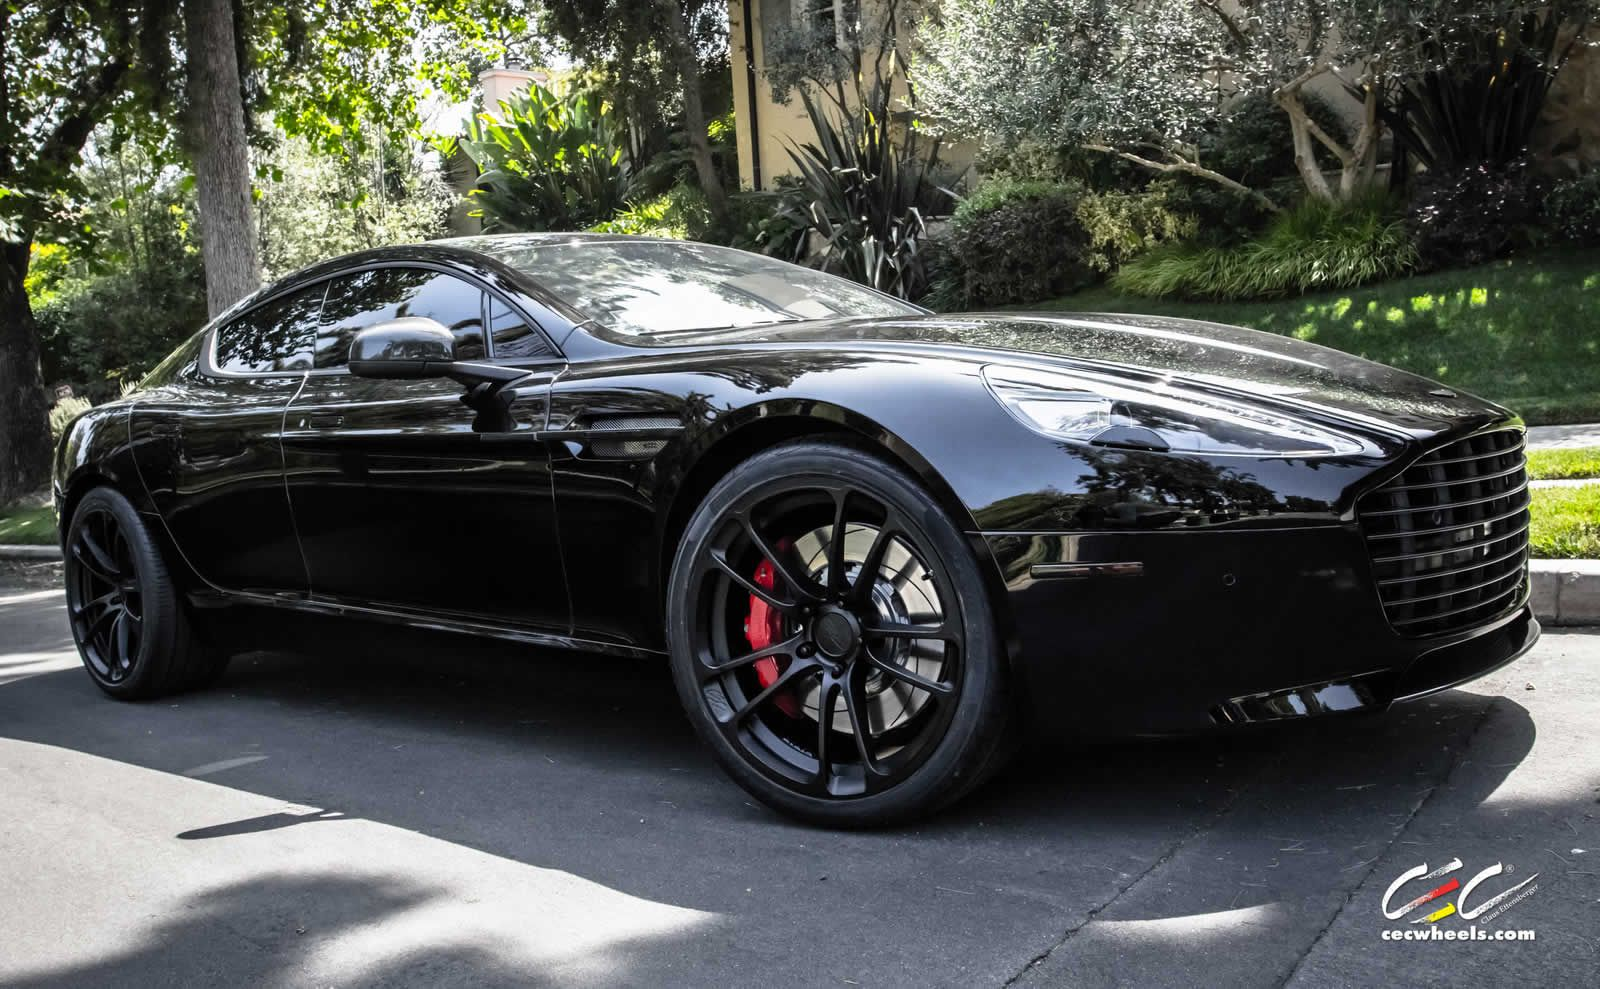 Aston Martin Rapide S With Cec Forged Wheels And Black Out Aston Martin Rapide Aston Martin Aston